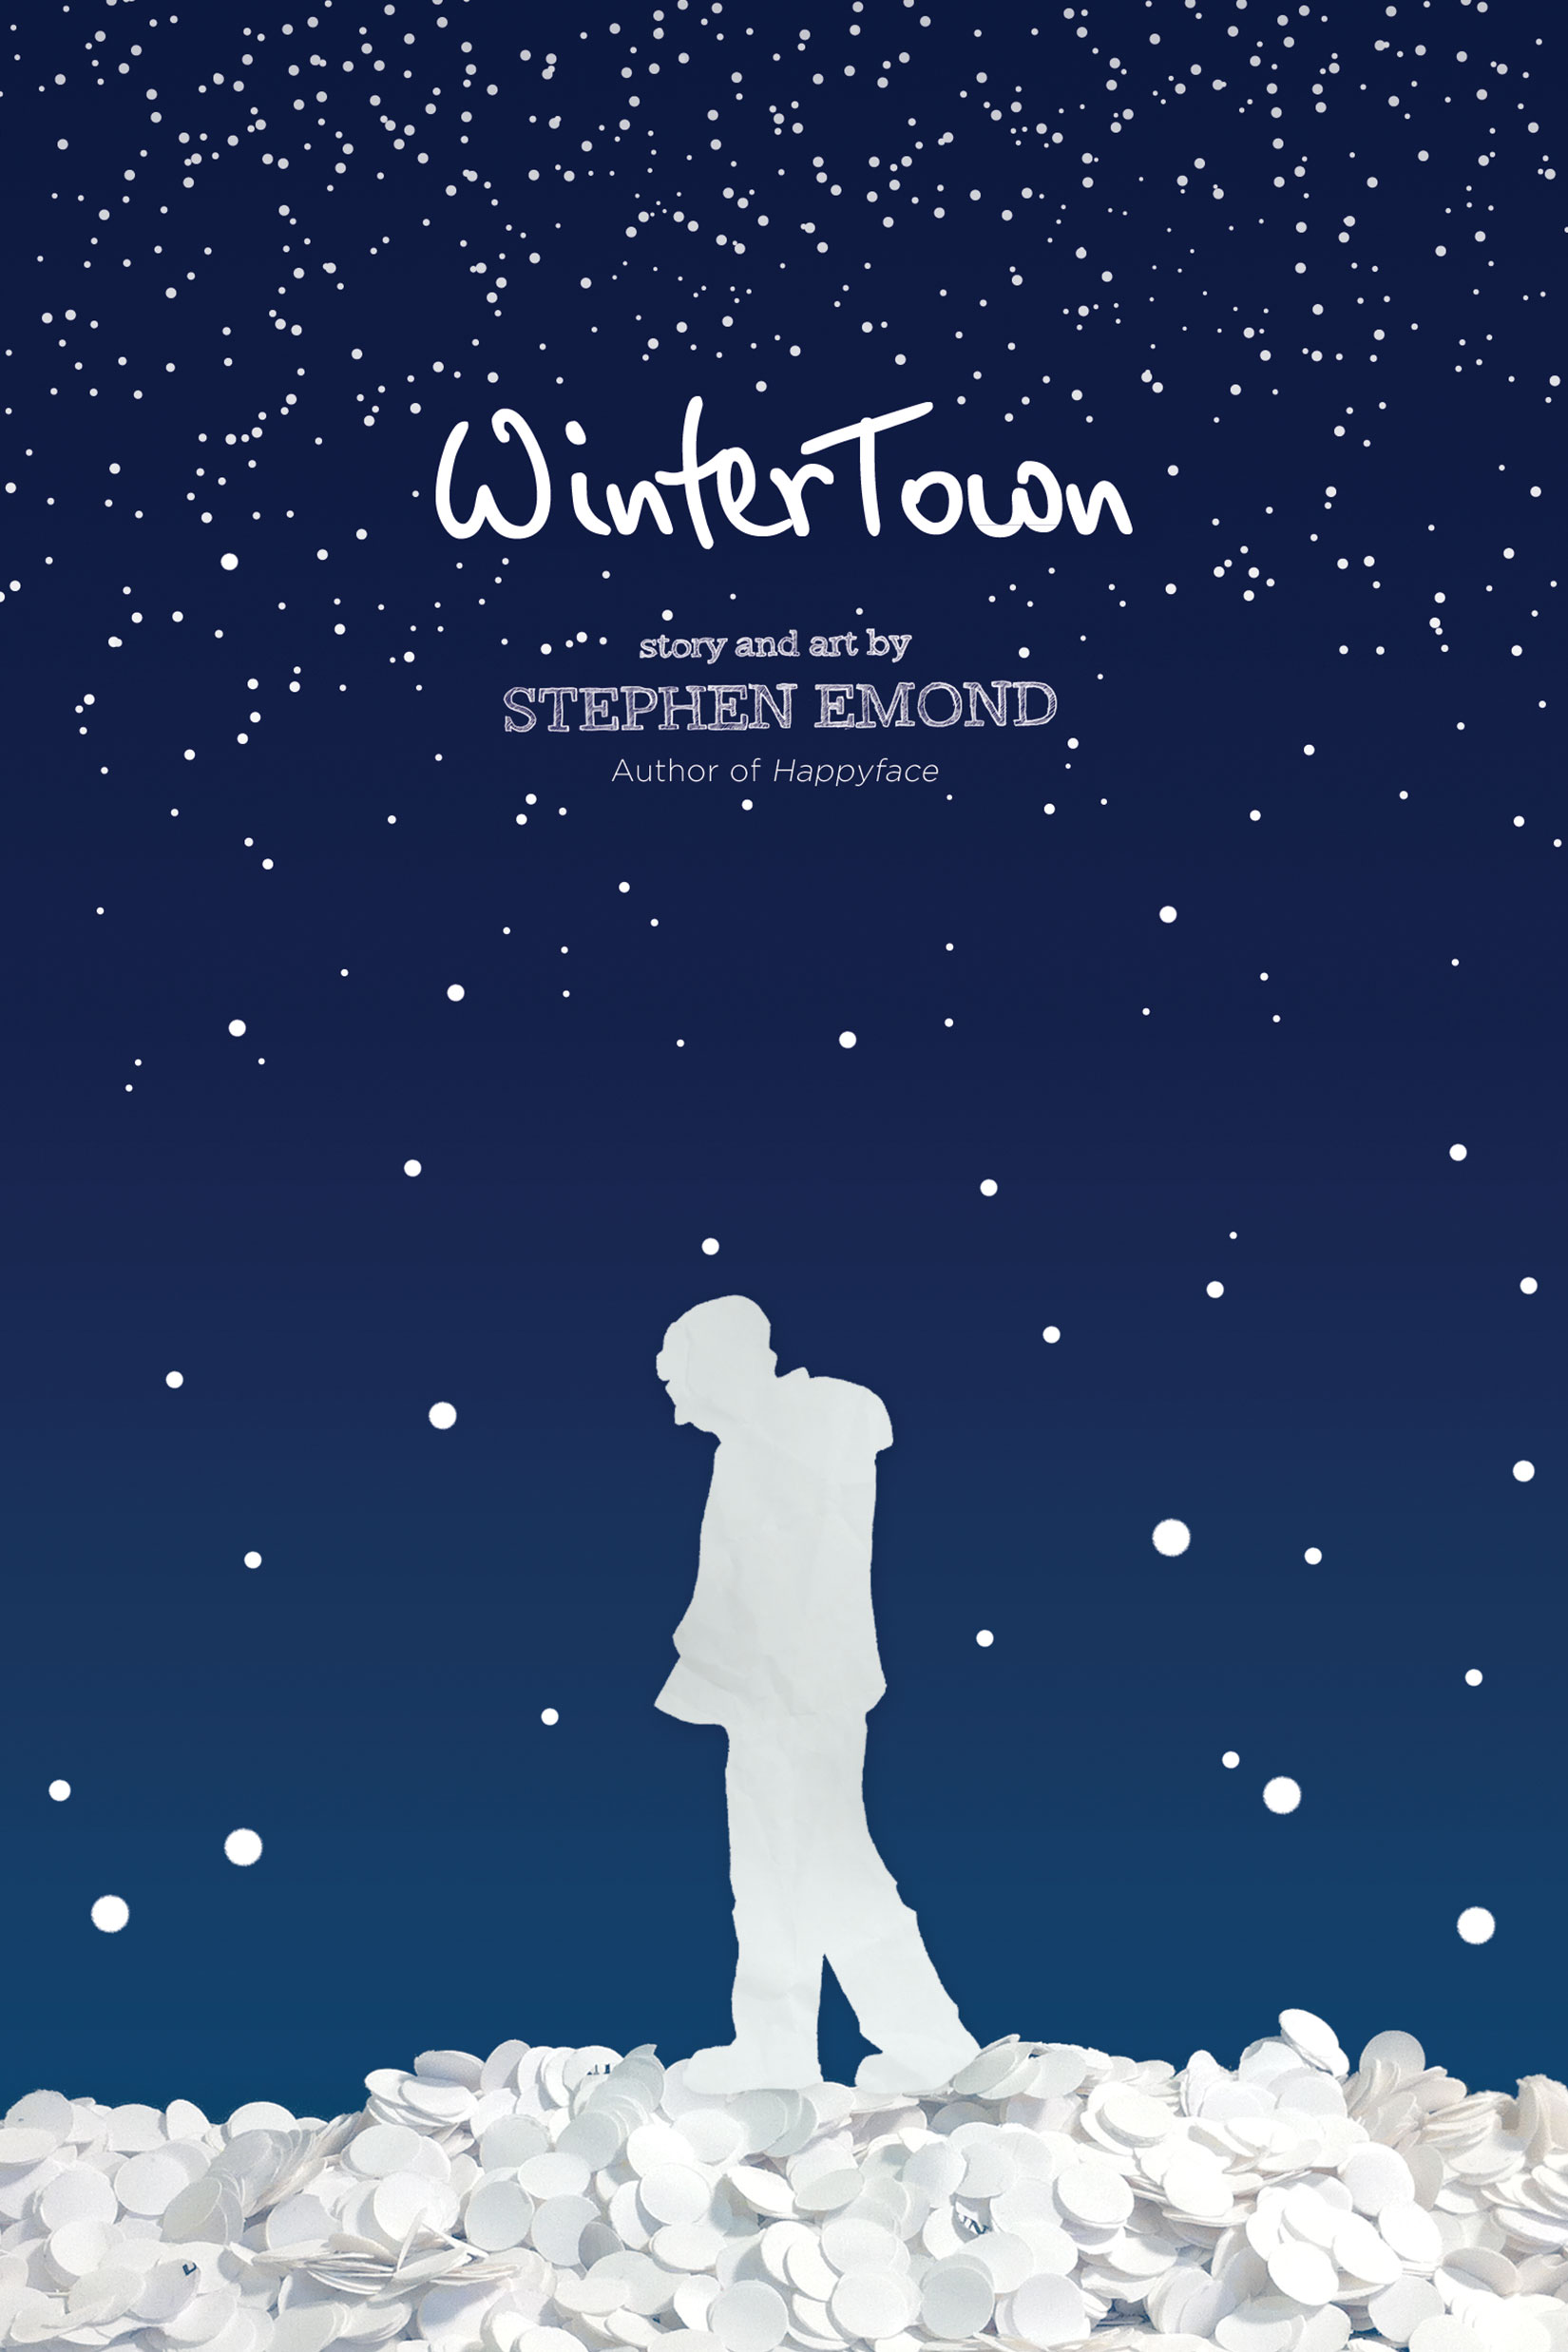 WinterTown by Stephen Emond Designed by Ben Mautner for Little, Brown Illustrated by Stephen Emond and Ben Mautner